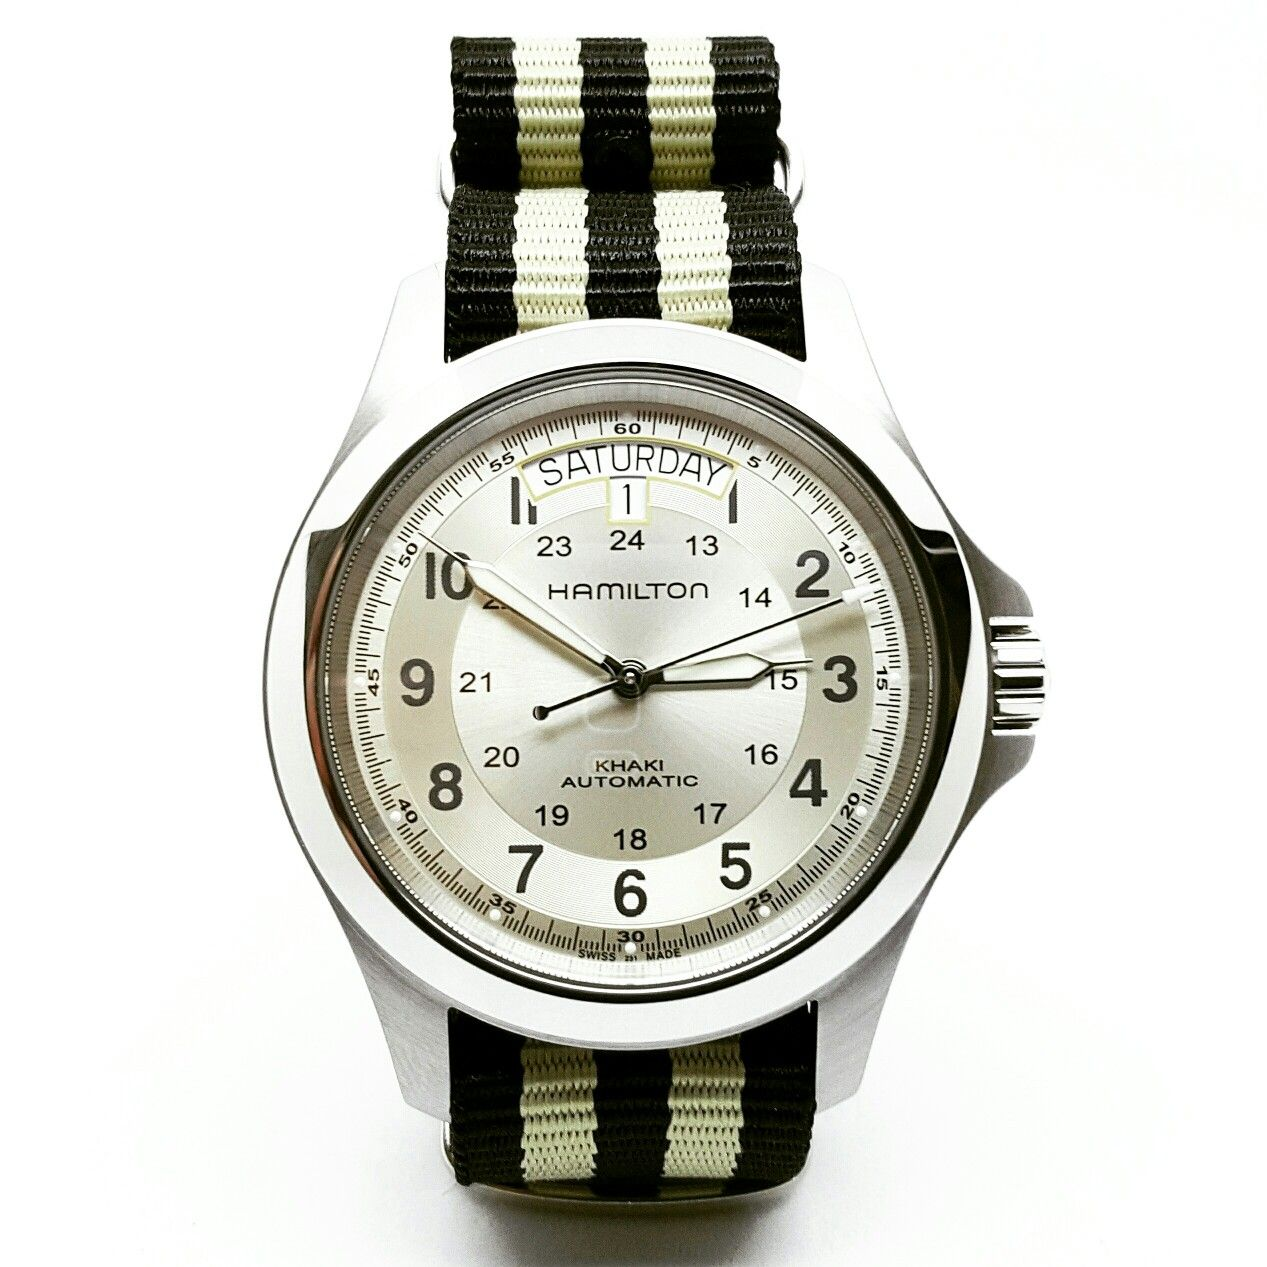 7d0bd487e99 Hamilton khaki king with Black   Gold NATO strap from The Urban Gentleman